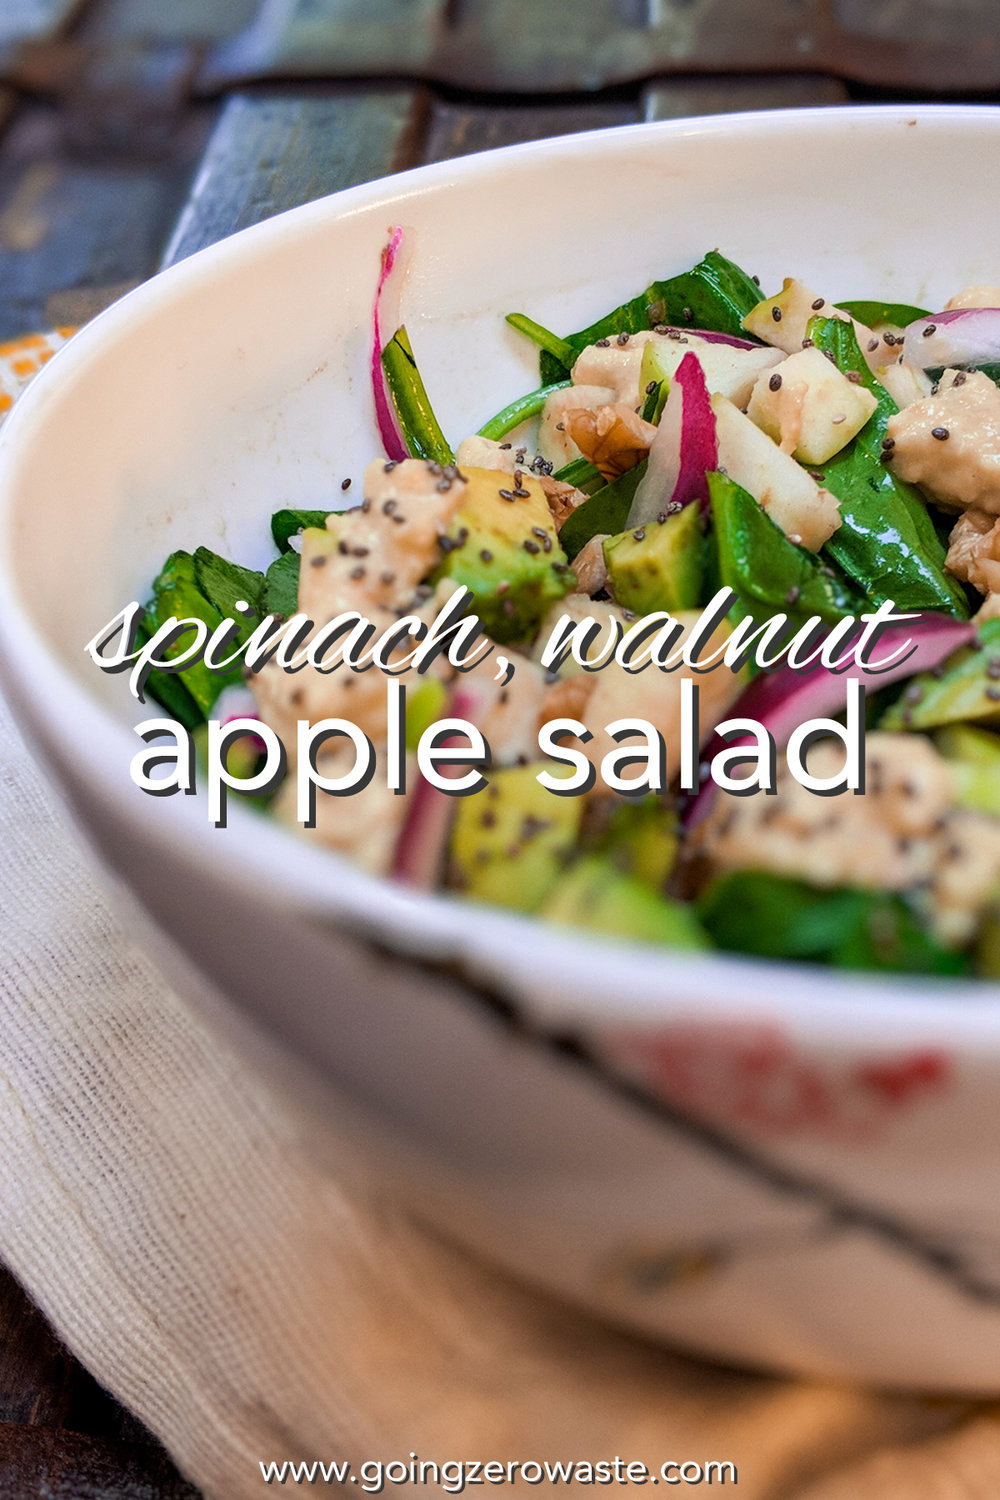 Spinach, walnut, and apple salad from www.goingzerowaste.com #salads #fallrecipes #spinach #apple